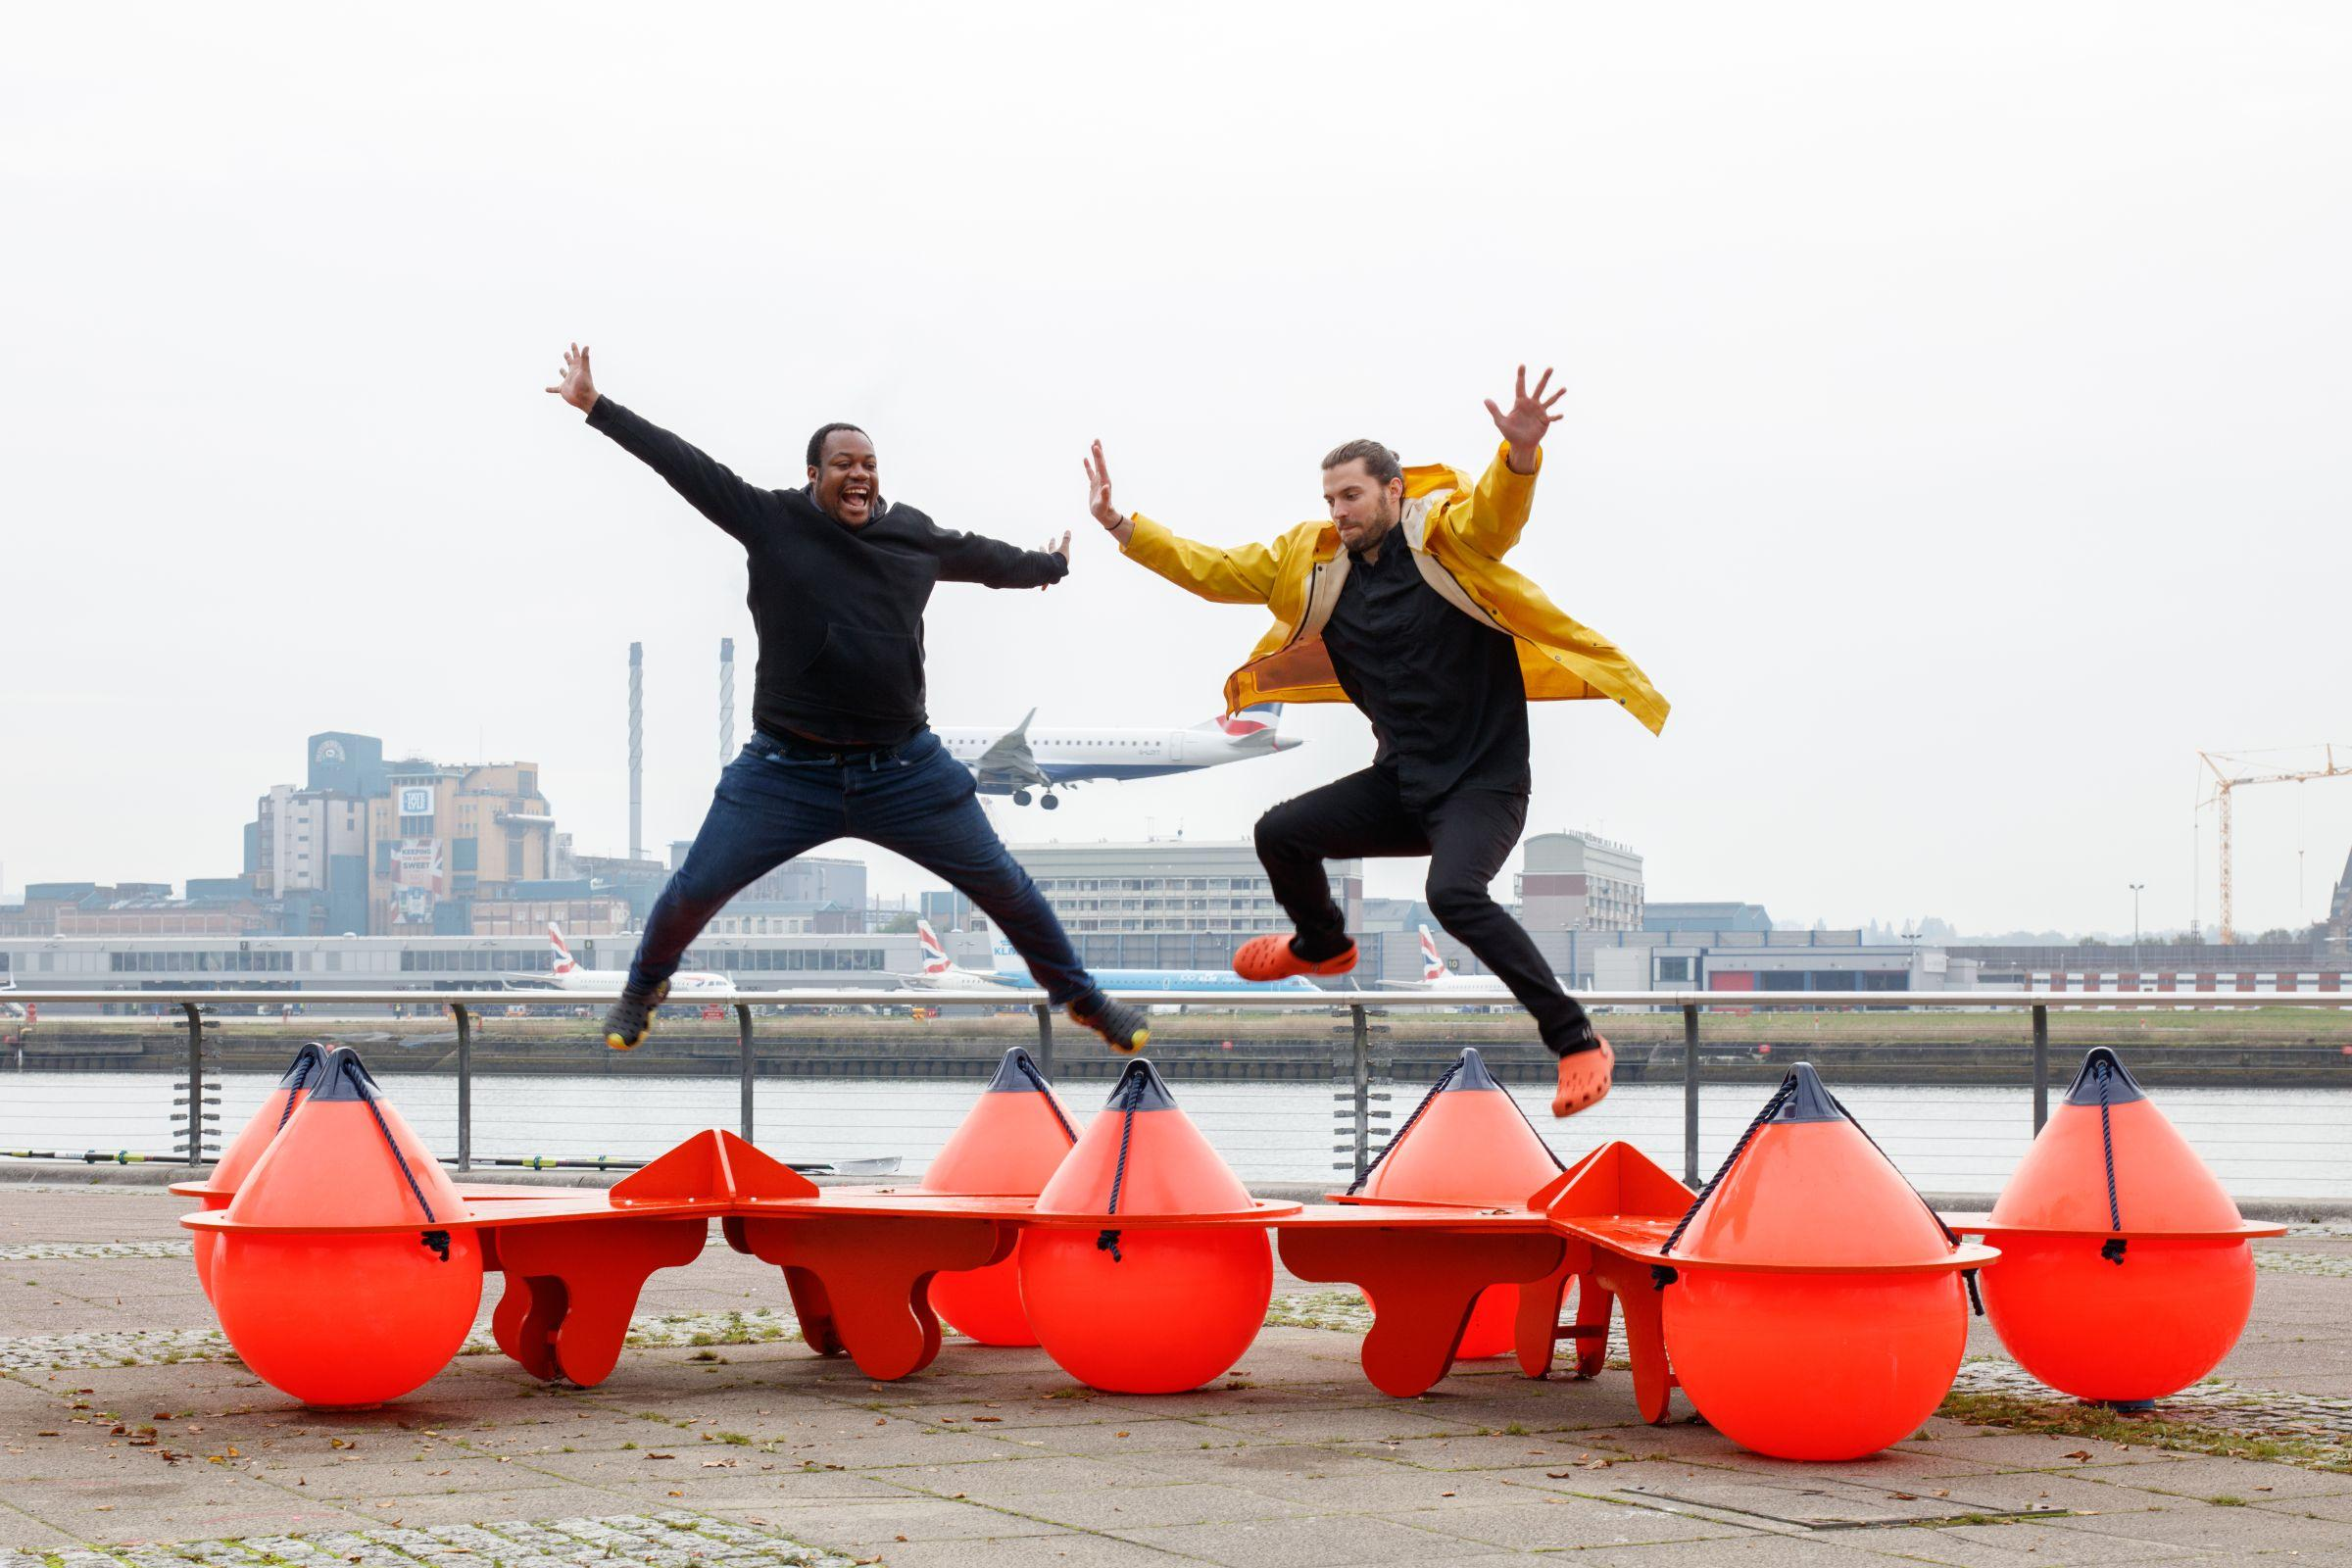 The Buoys are Back in Town bench sculpture by McCloy + Muchemwa